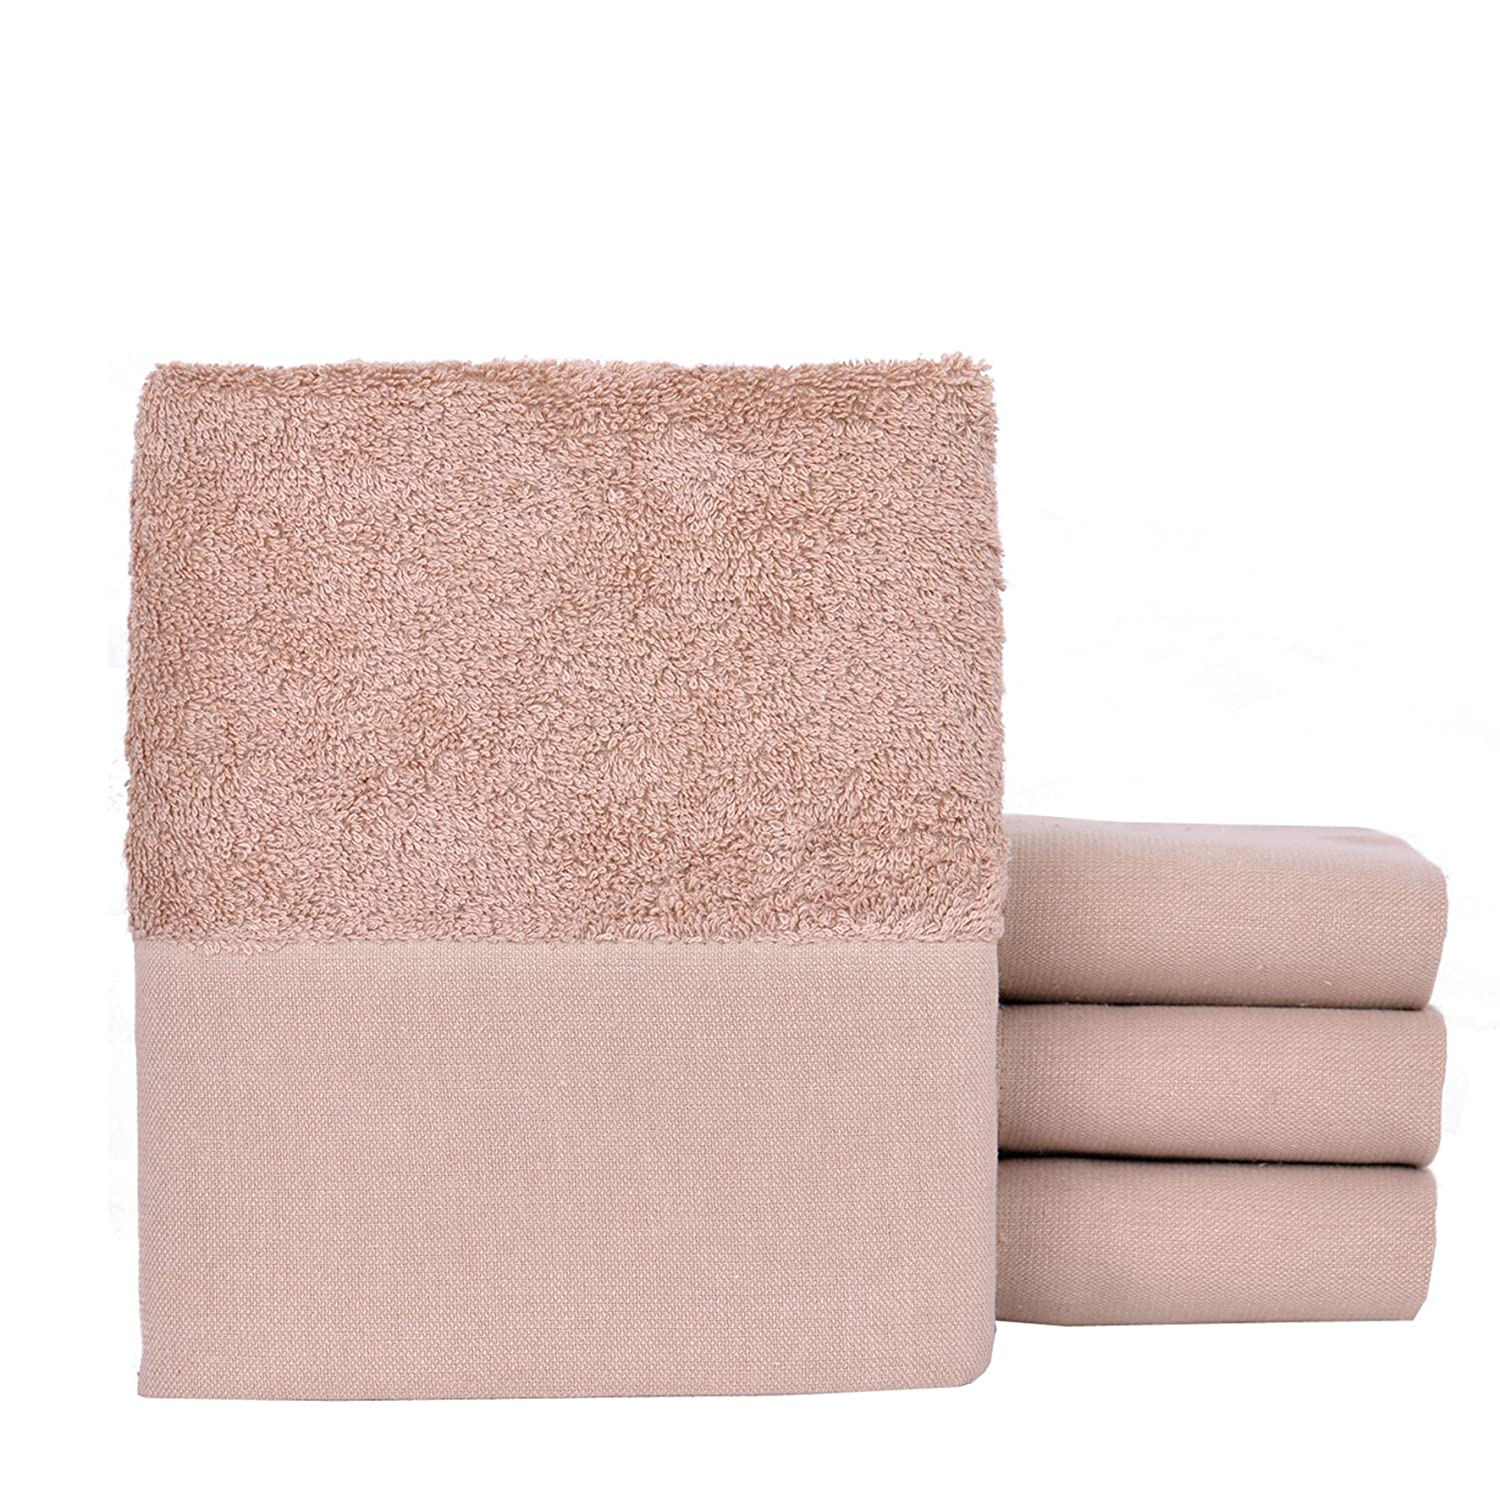 4 Packs MINTEKS Quick Dry 152302640 Turkish Hand Towels Blank Towel for Embroidery Brown